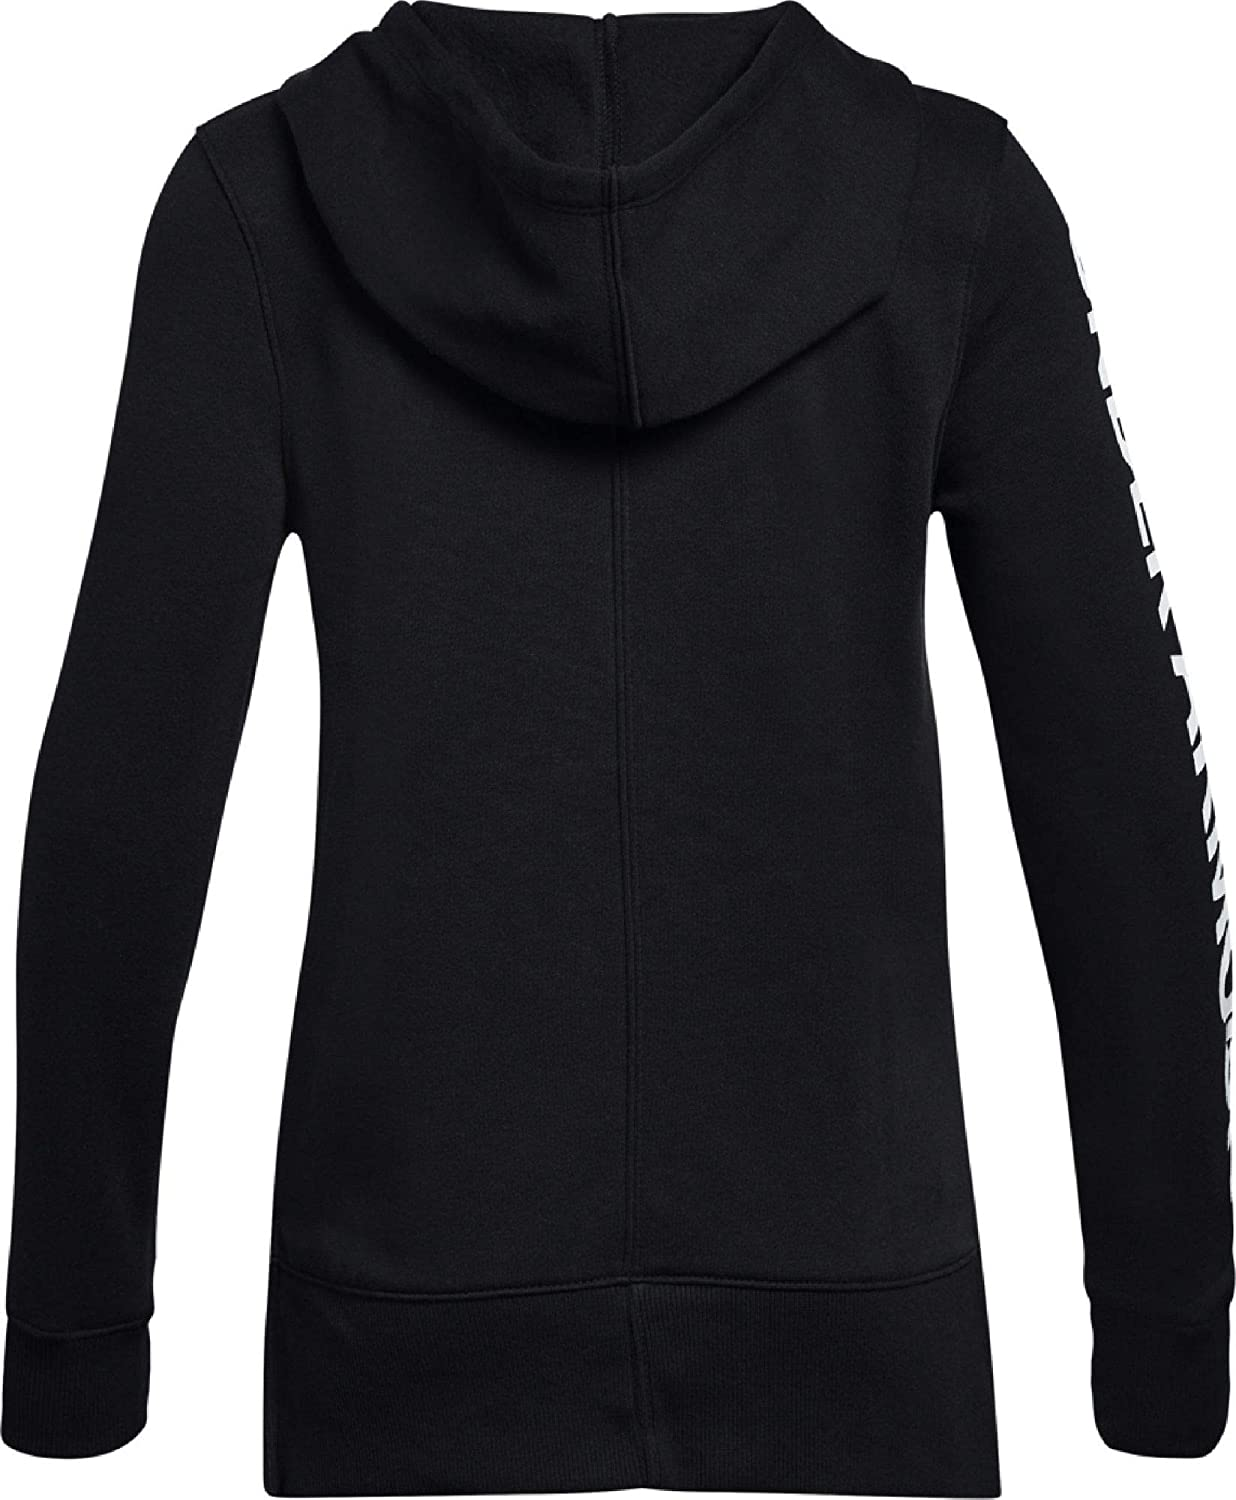 Under Armour Girls Rival Full Zip Warm-up Top